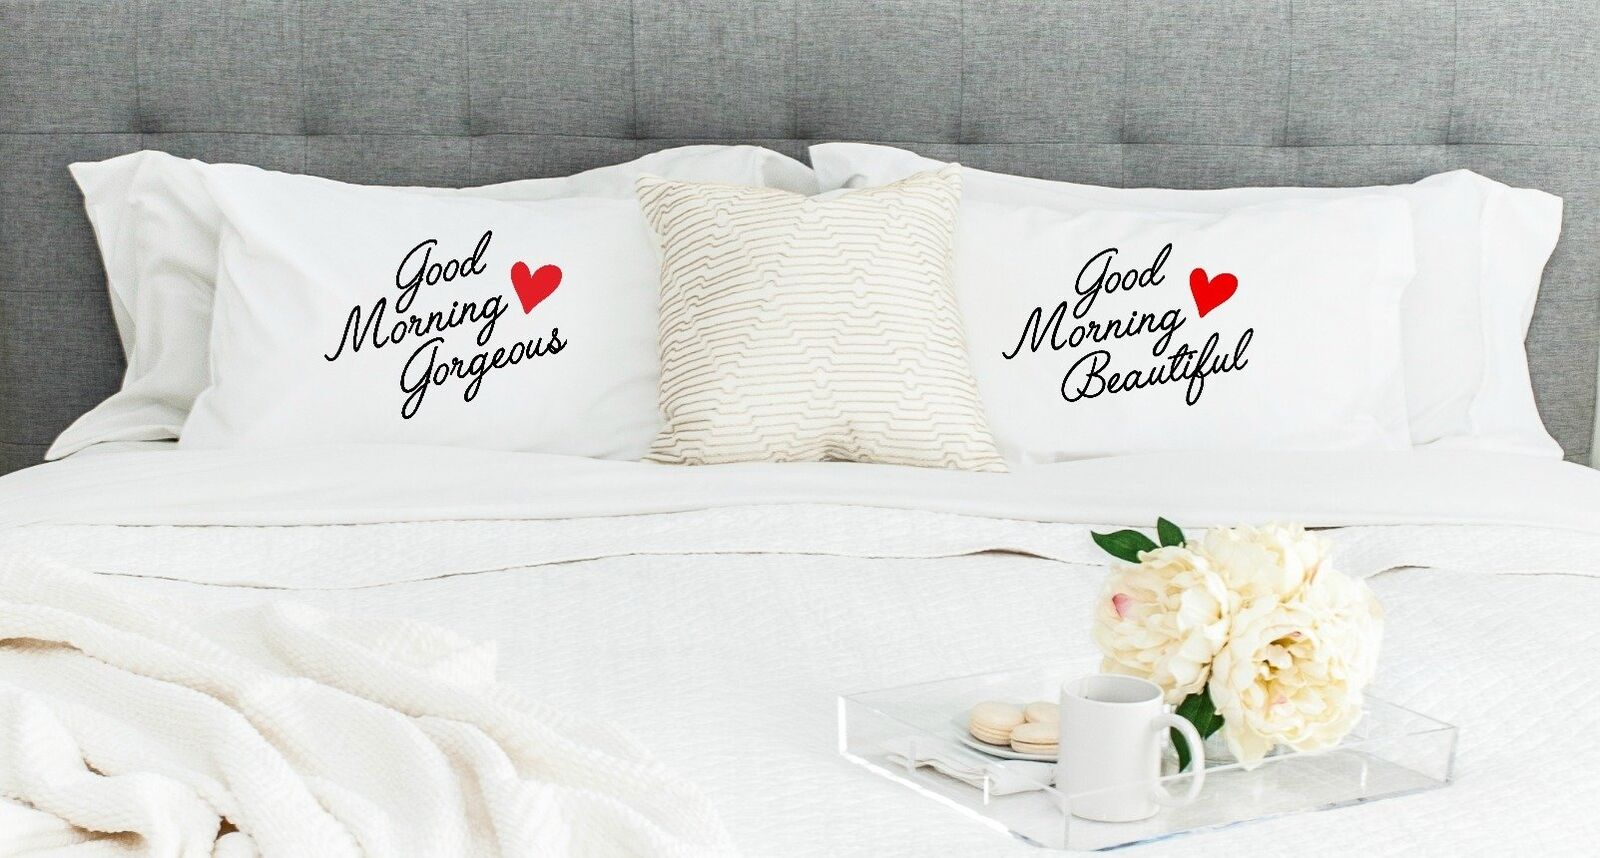 'Good Morning Gorgeous and Good Morning Beautiful' Pillowcases (Set of 2)